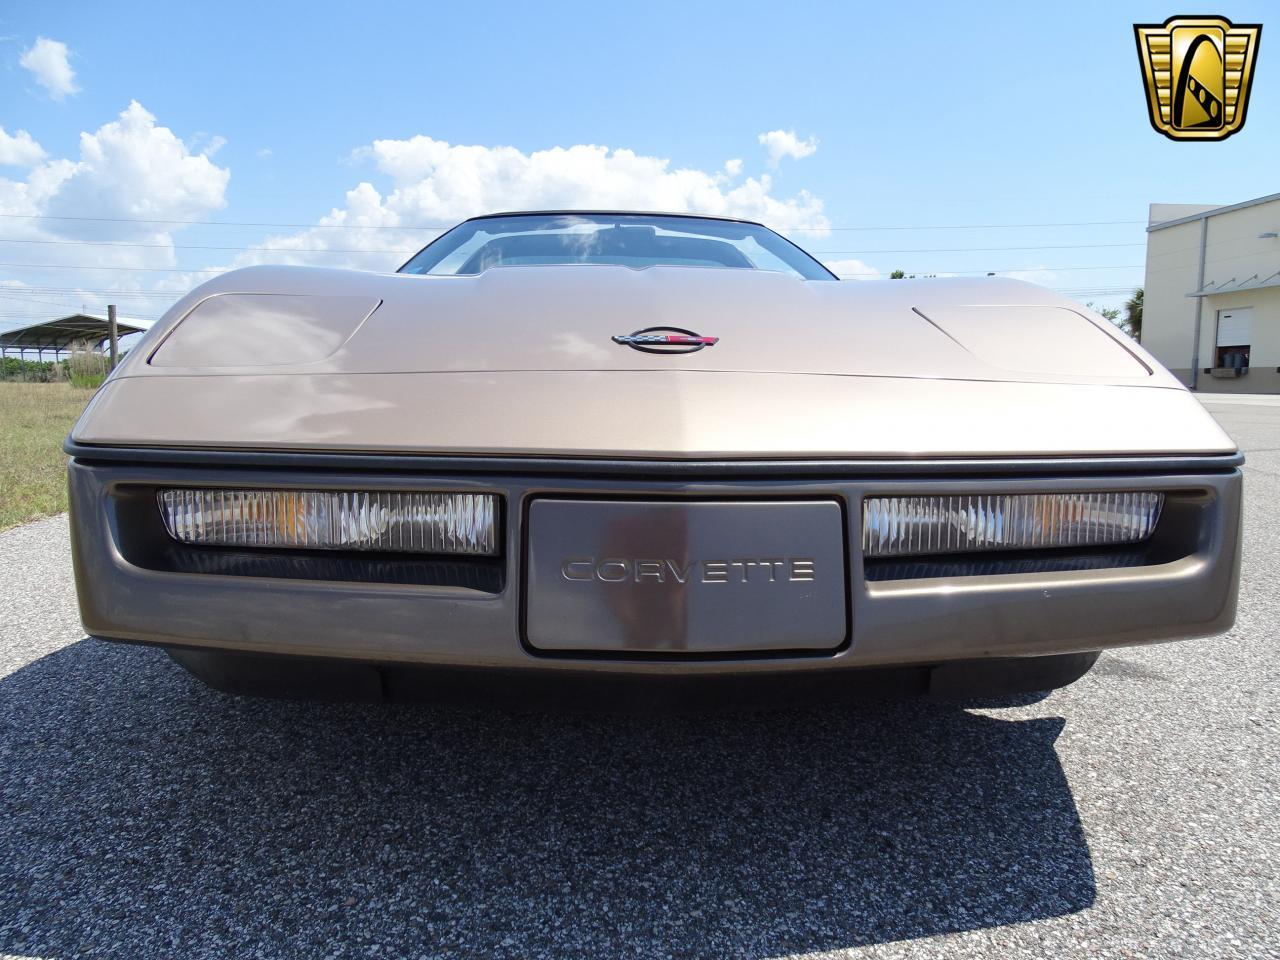 Large Picture of 1985 Chevrolet Corvette located in Ruskin Florida - $15,995.00 Offered by Gateway Classic Cars - Tampa - L3PW